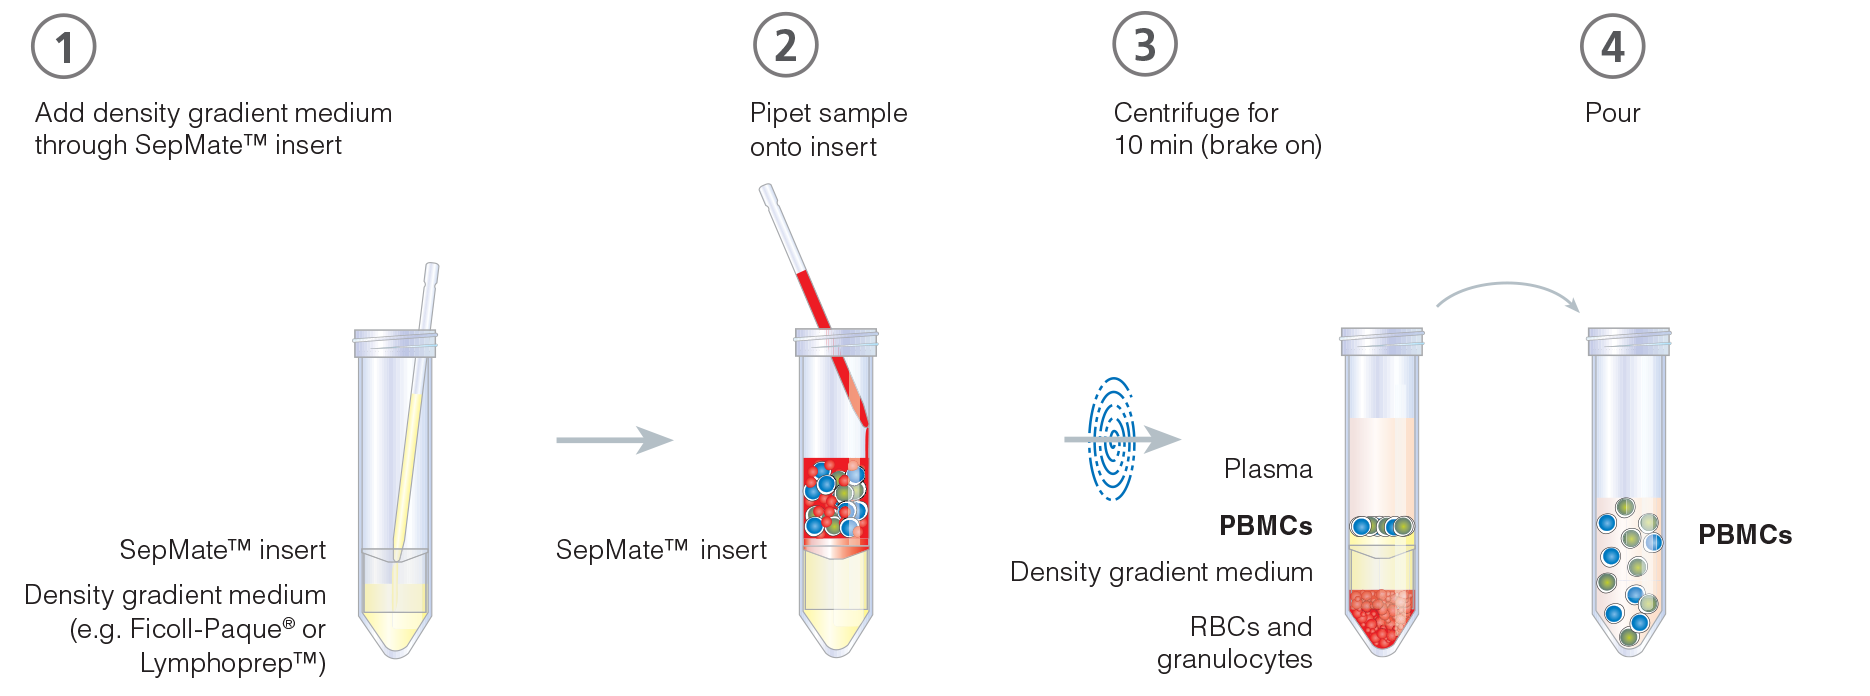 Typical SepMate™ PBMC isolation protocol